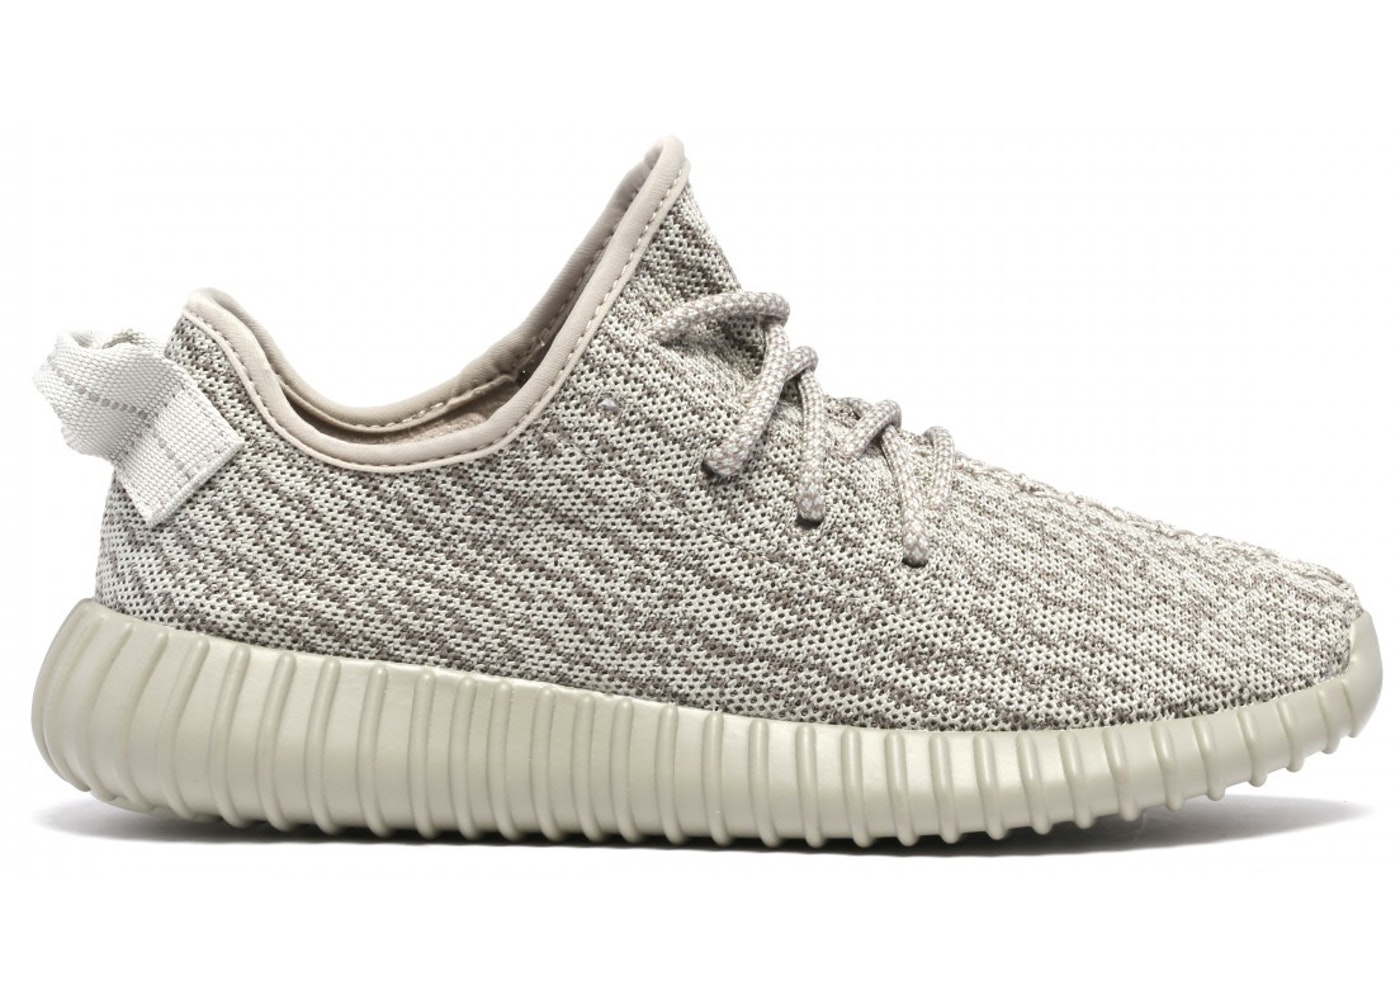 Adidas Yeezy 350 Boost Moonrock Moon Rock Agagra Moonro AQ 2660